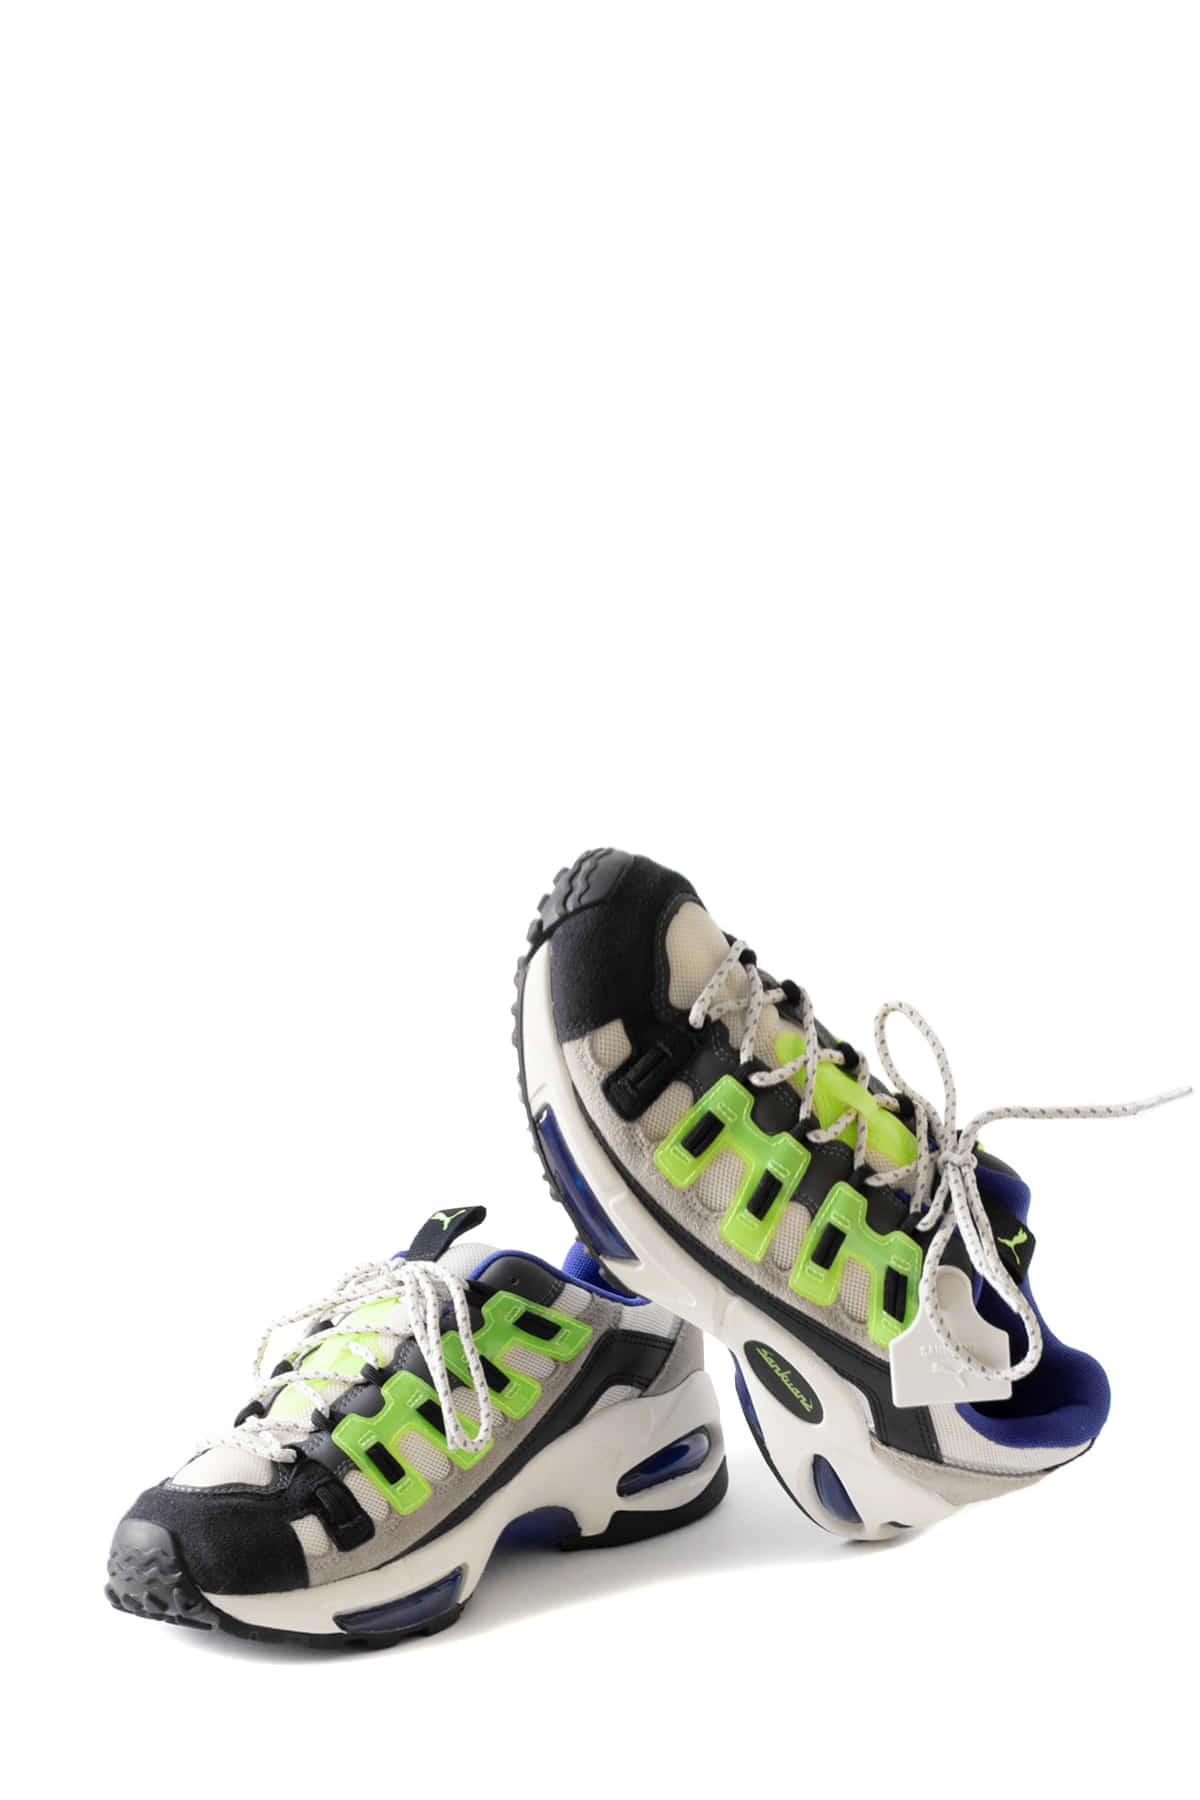 PUMA x Sankuanz : Cell Endura Sankuanz (Cream / Green / Black)